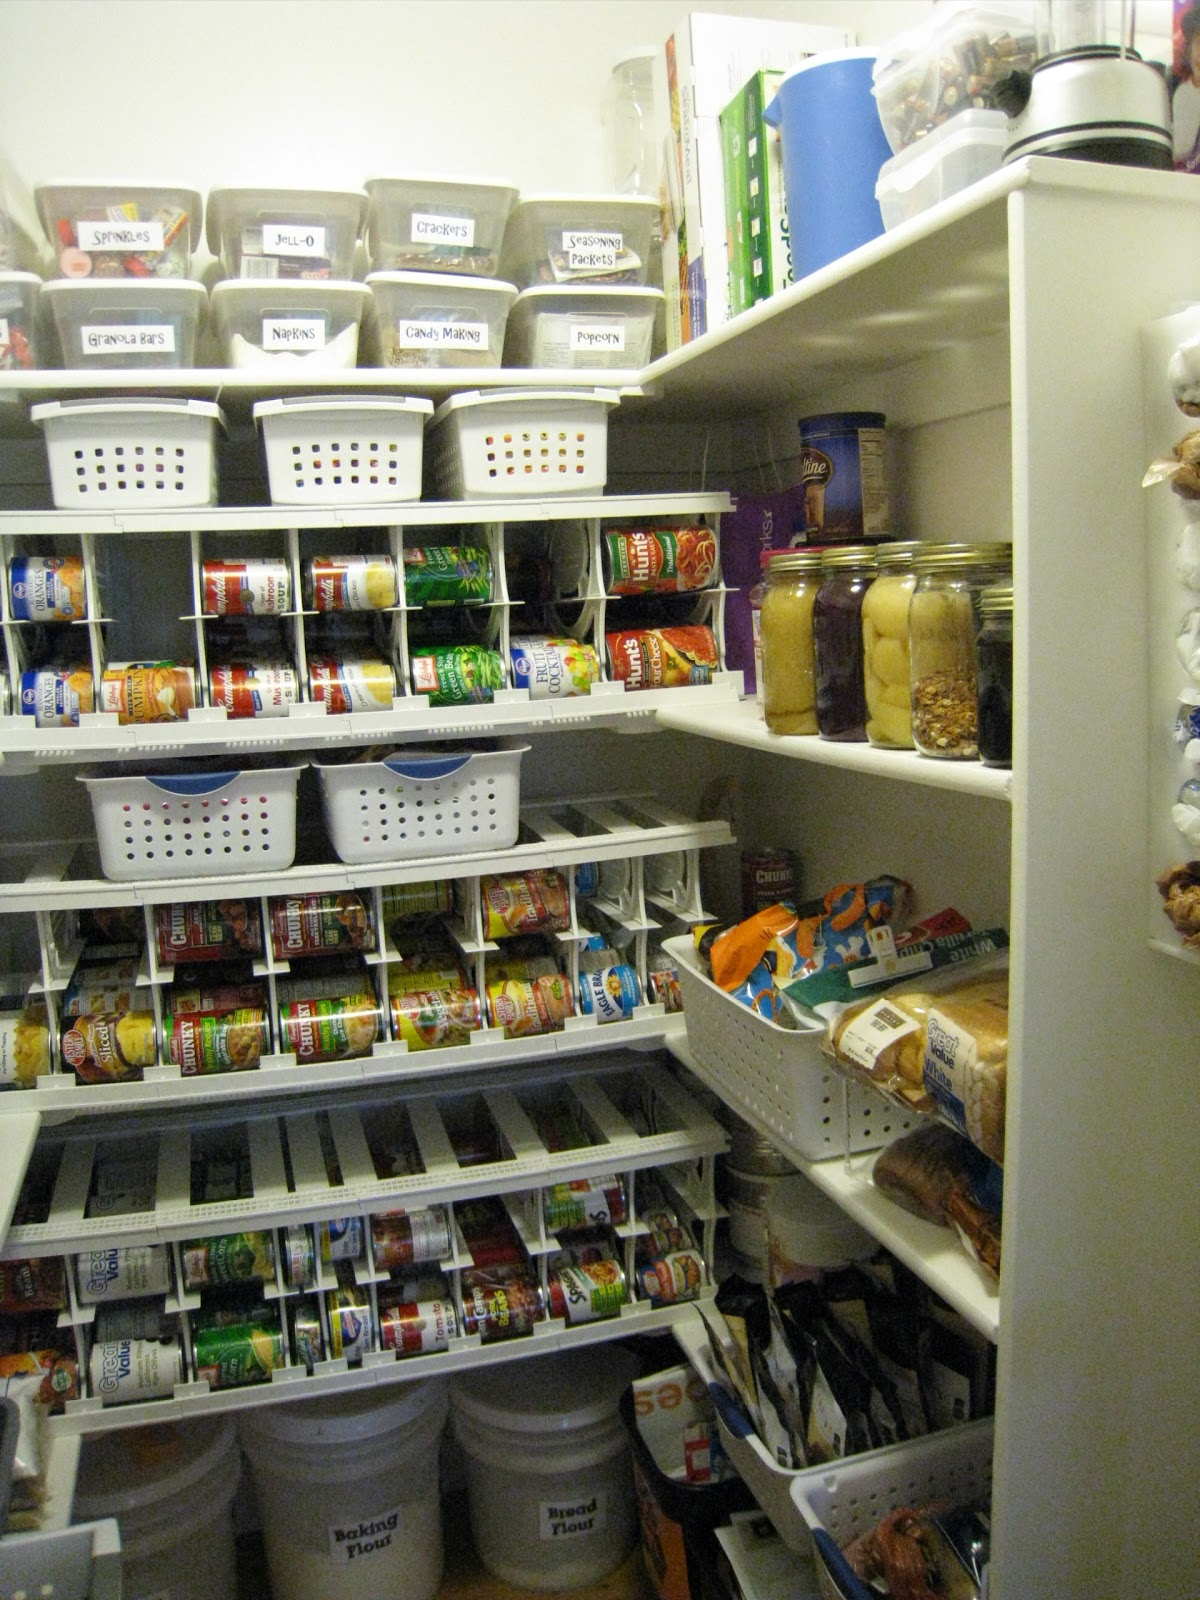 ... Cansolodators It Freed Up A Ton Of Space In Her Food Storage. She Was  Able To Move Most Of Her Canned Goods (like Soup And Corn) Upstairs To Her  Pantry.